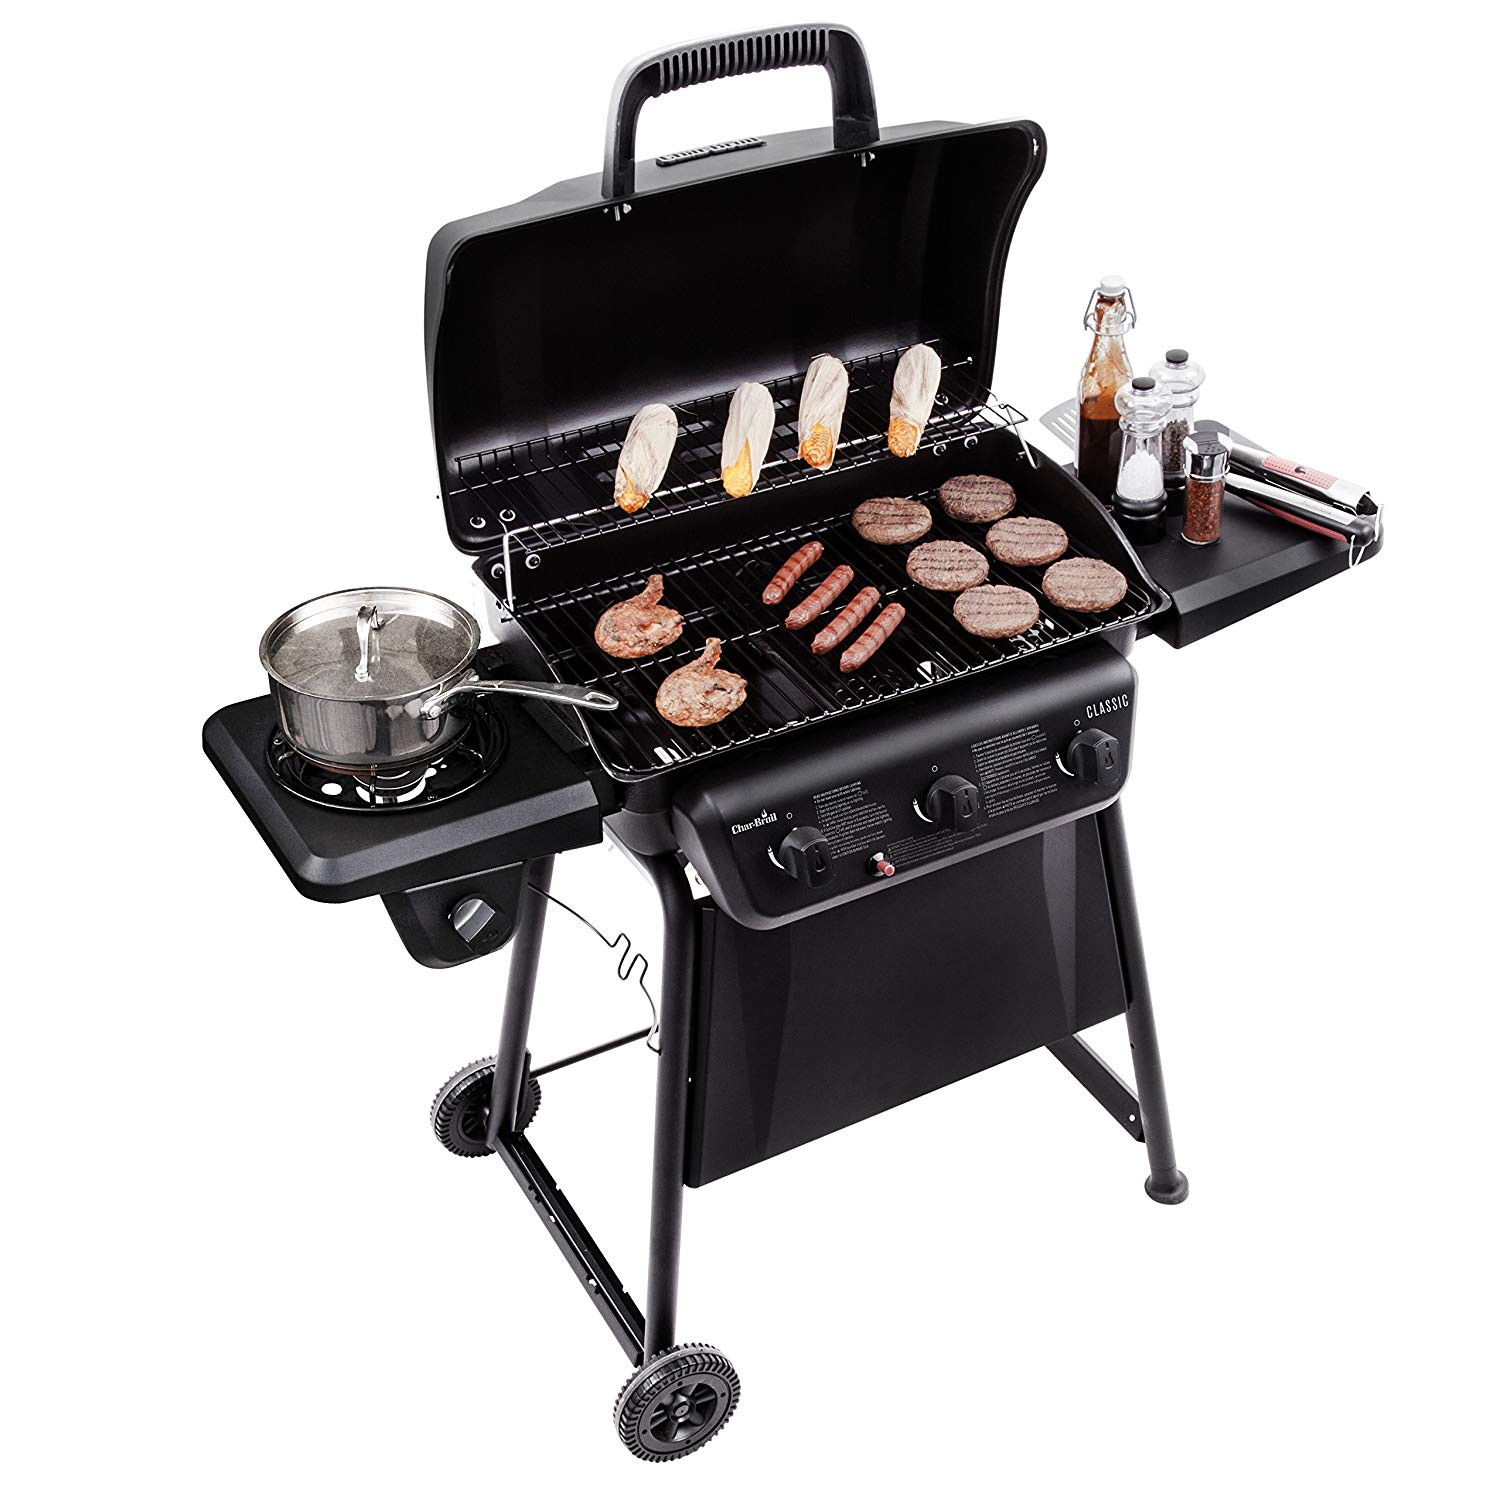 Best outdoor gas grills review 2019 with lowest price ...